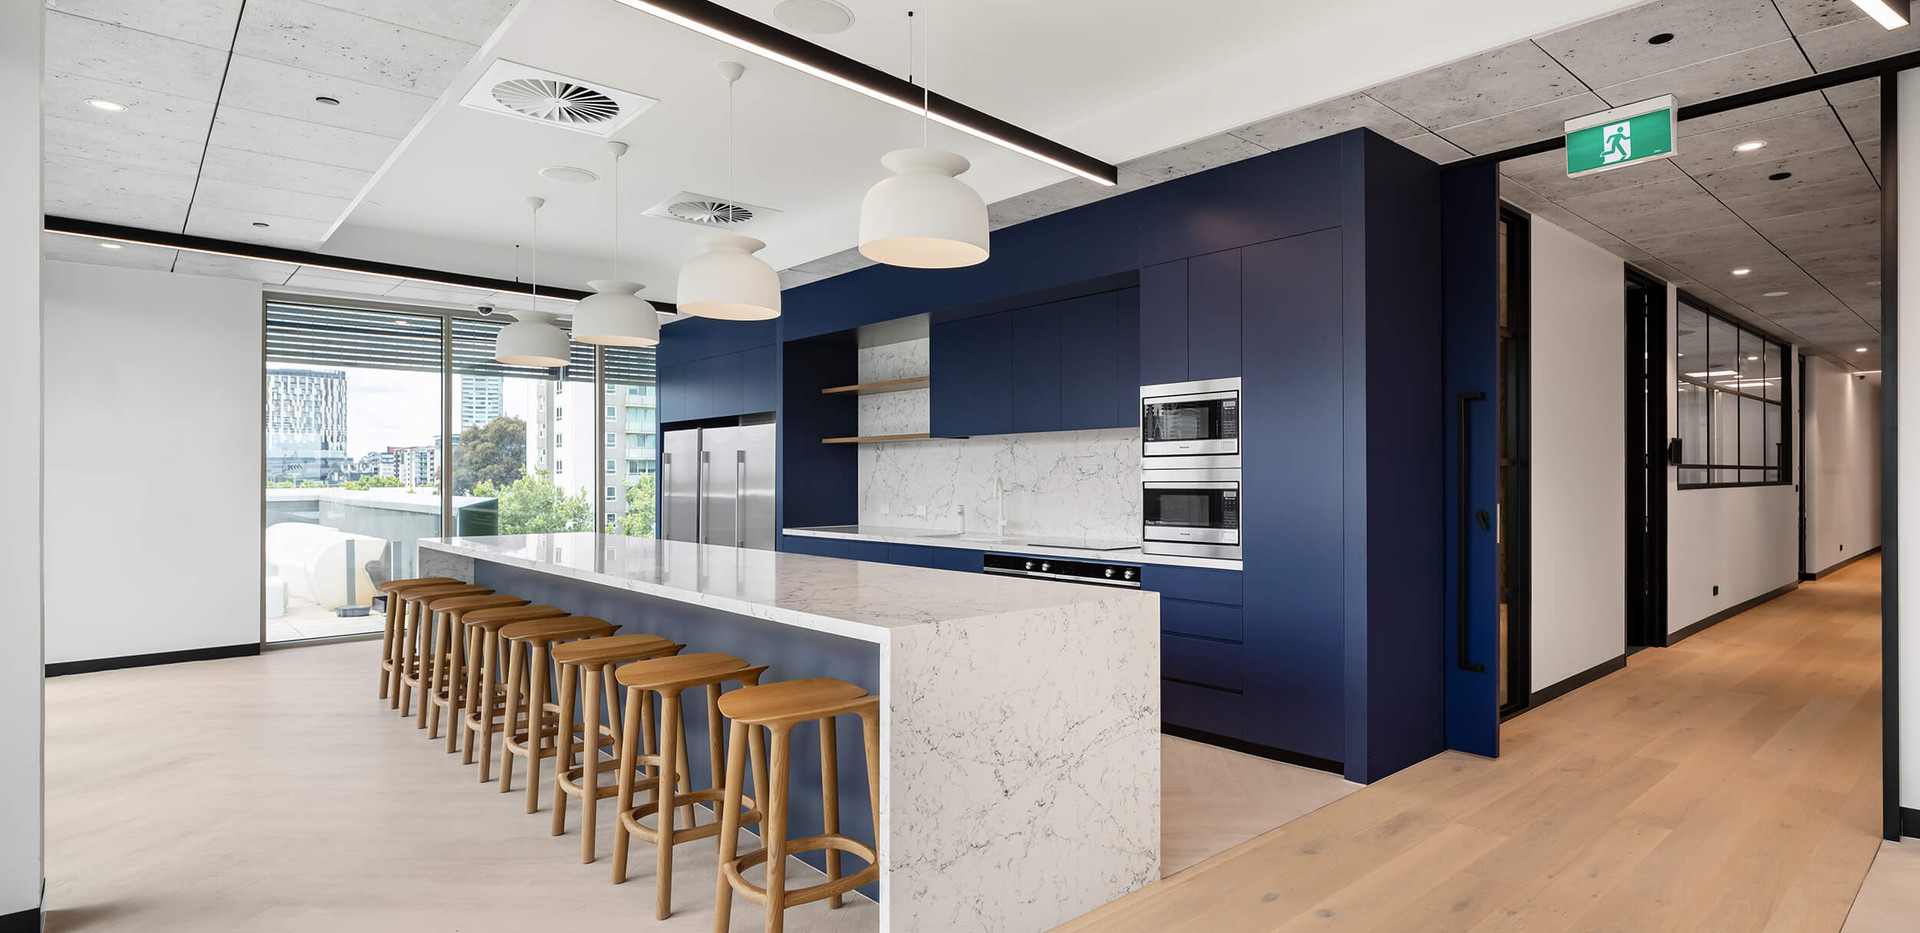 Southern Cross Austereo Melbourne - corporate kitchen design